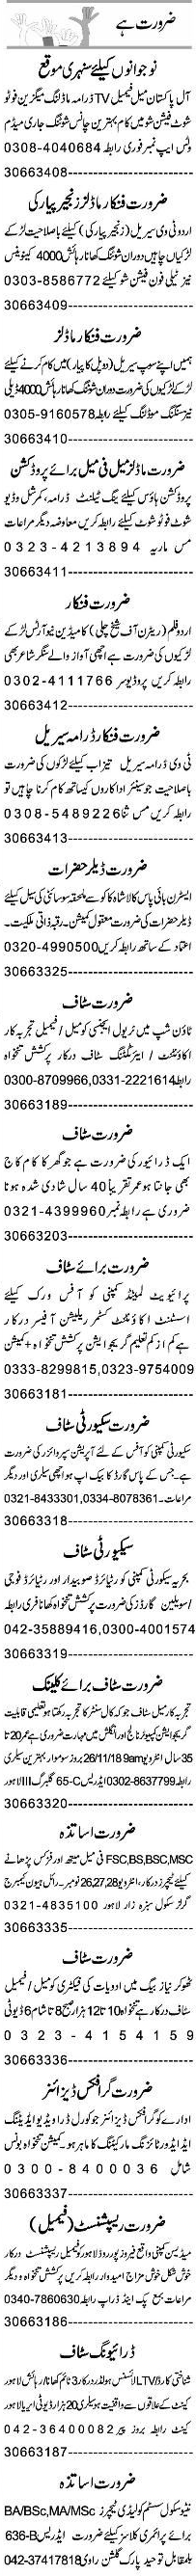 Accountant, Assistant, Security Guard Job Opportunity